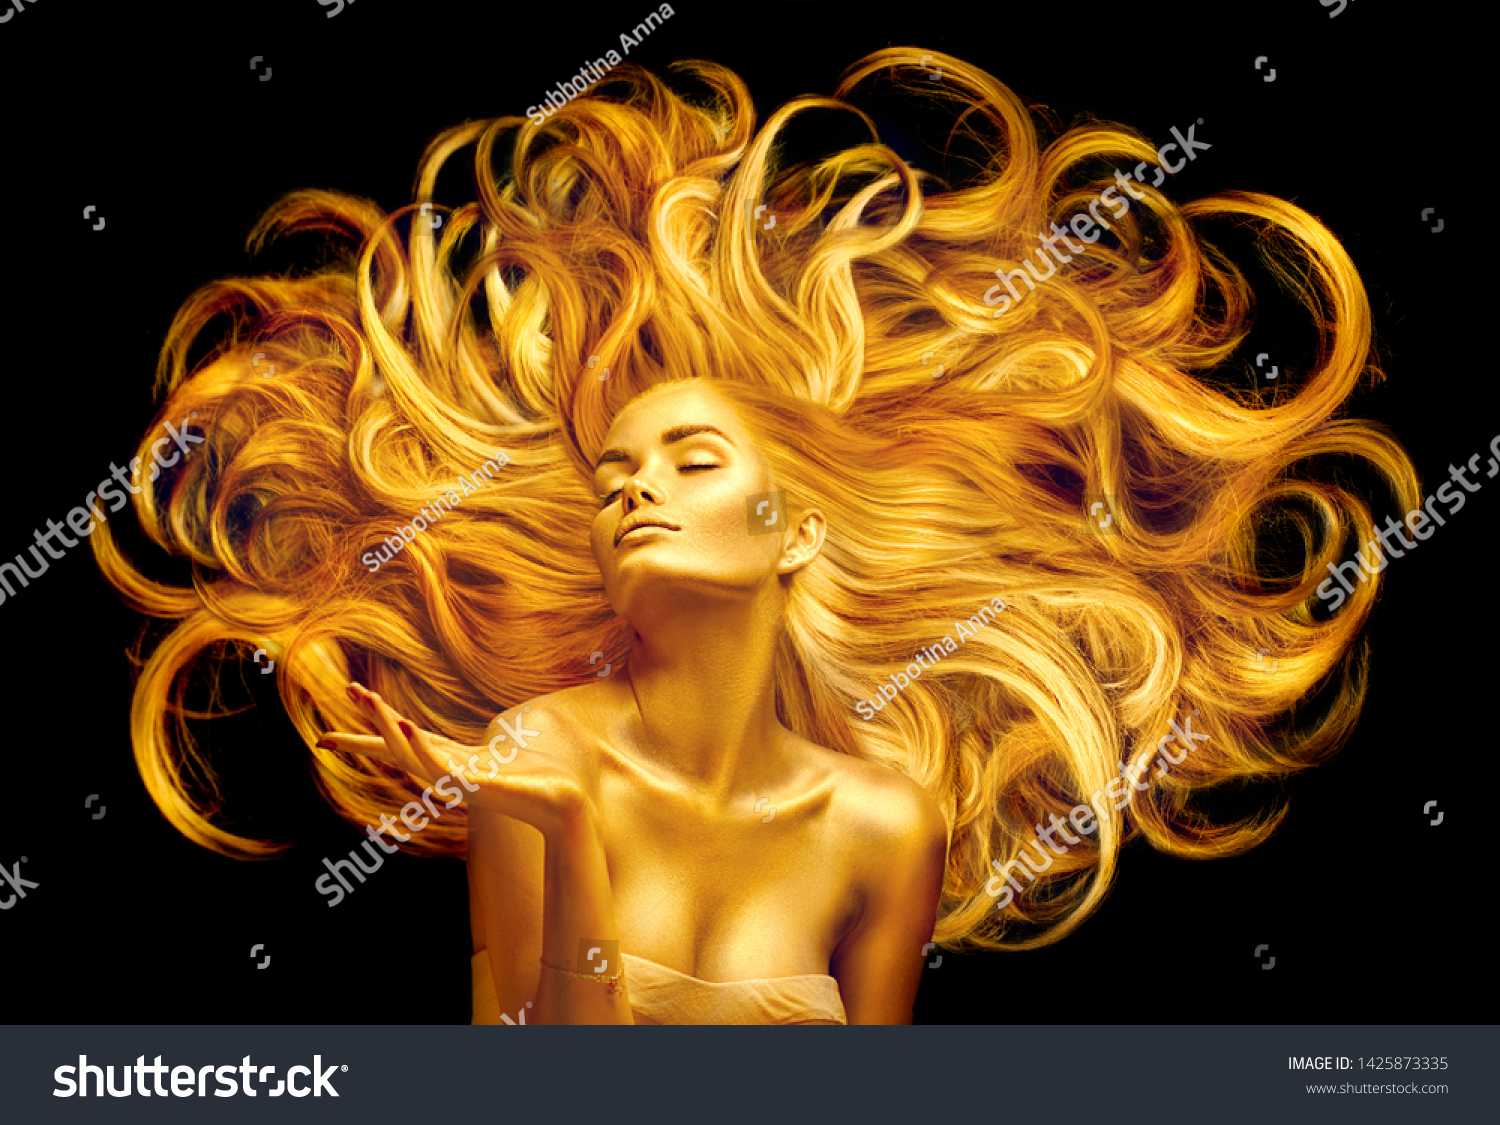 Gold Woman. Beauty fashion model girl with Golden make up, and Long hair pointing hand on black background. Gold glowing skin and fluttering hair. Metallic, glance Fashion art portrait, Hairstyle #1425873335